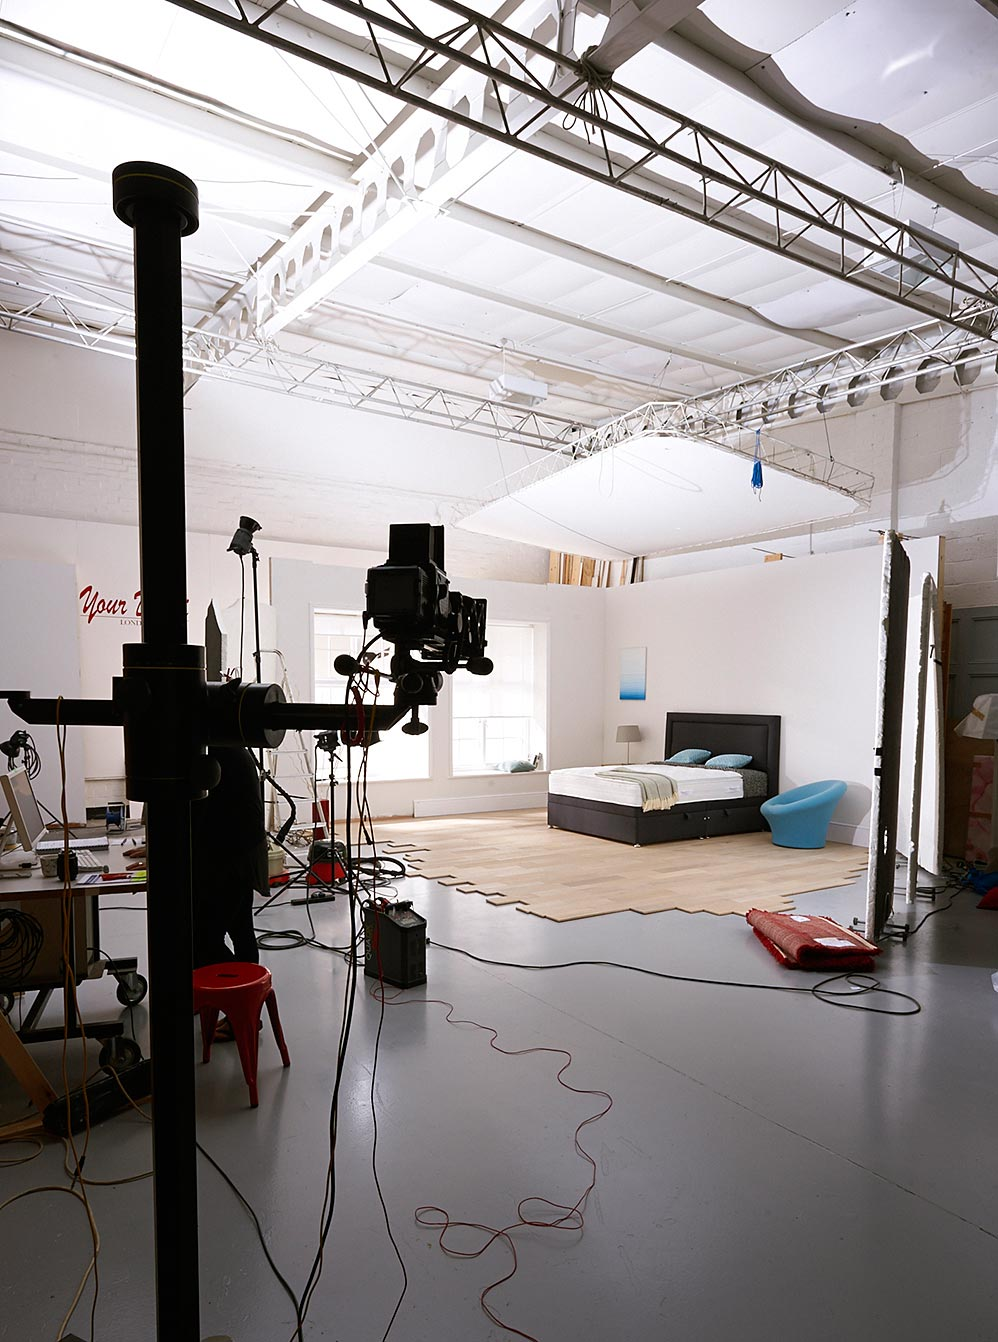 Roomset being built and photographed in Basement's Studio A